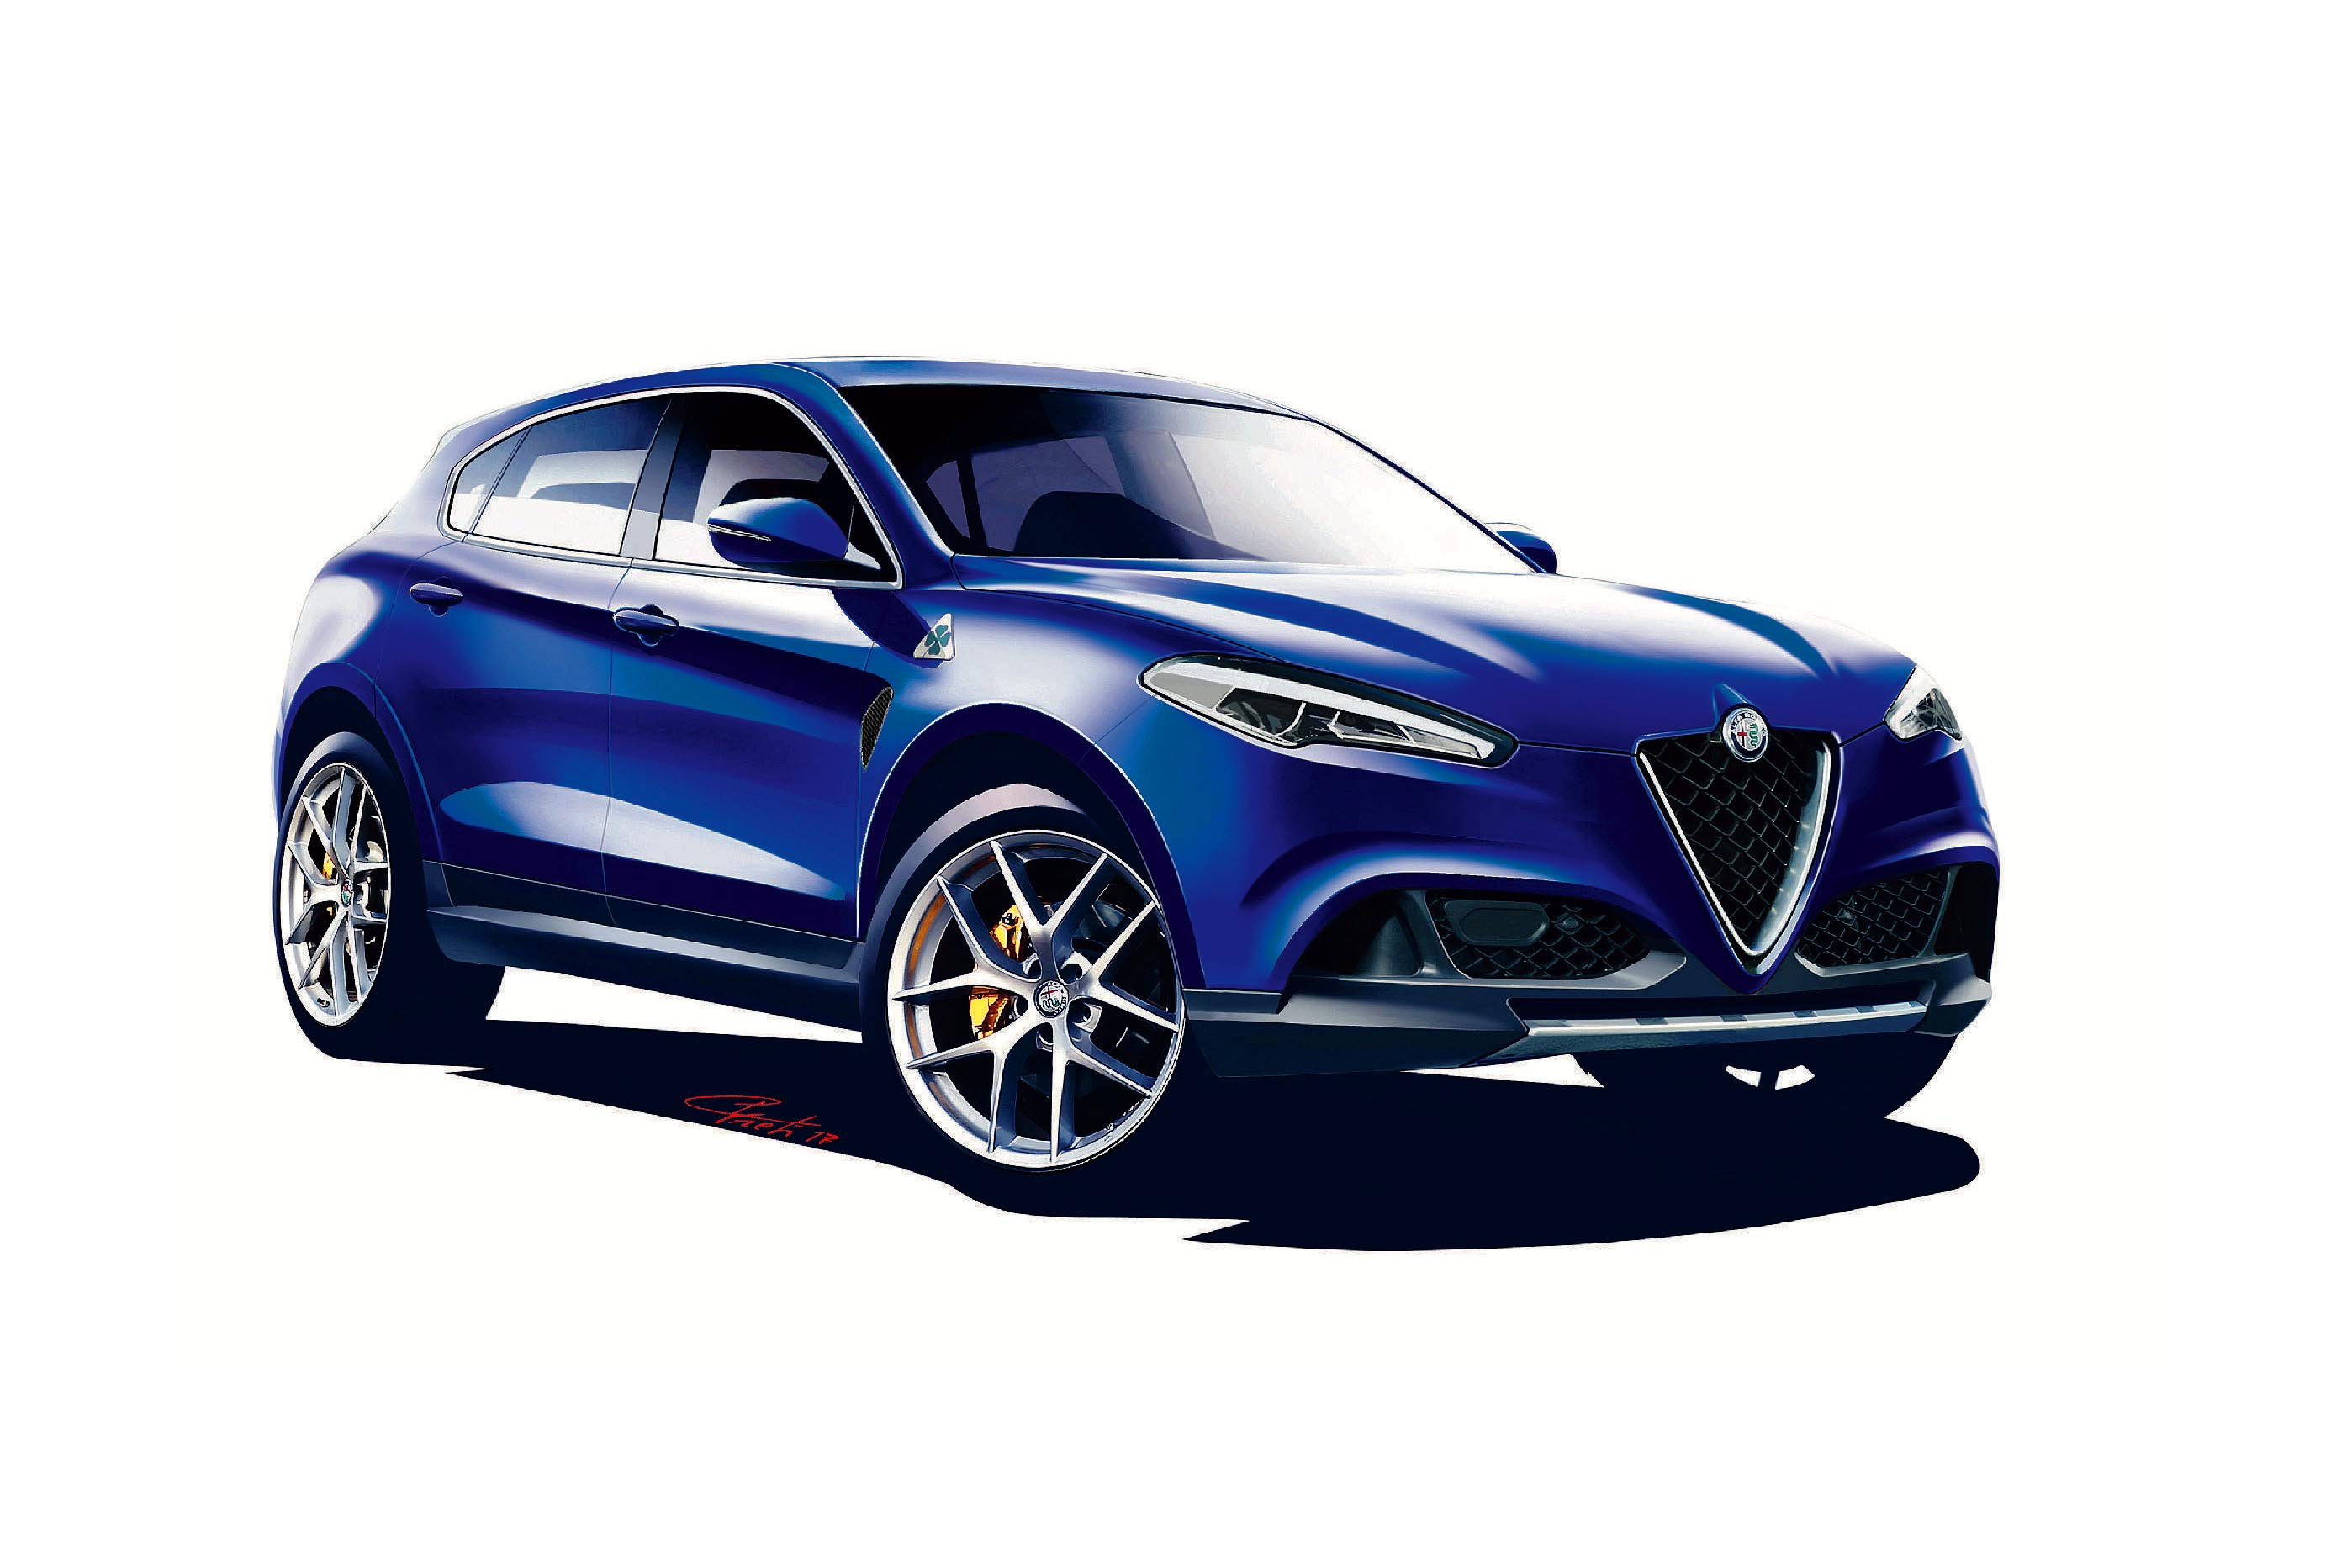 suv alfa romeo 2017 prix alfa romeo suv 2017 reviews 2017 alfa romeo suv future design release. Black Bedroom Furniture Sets. Home Design Ideas